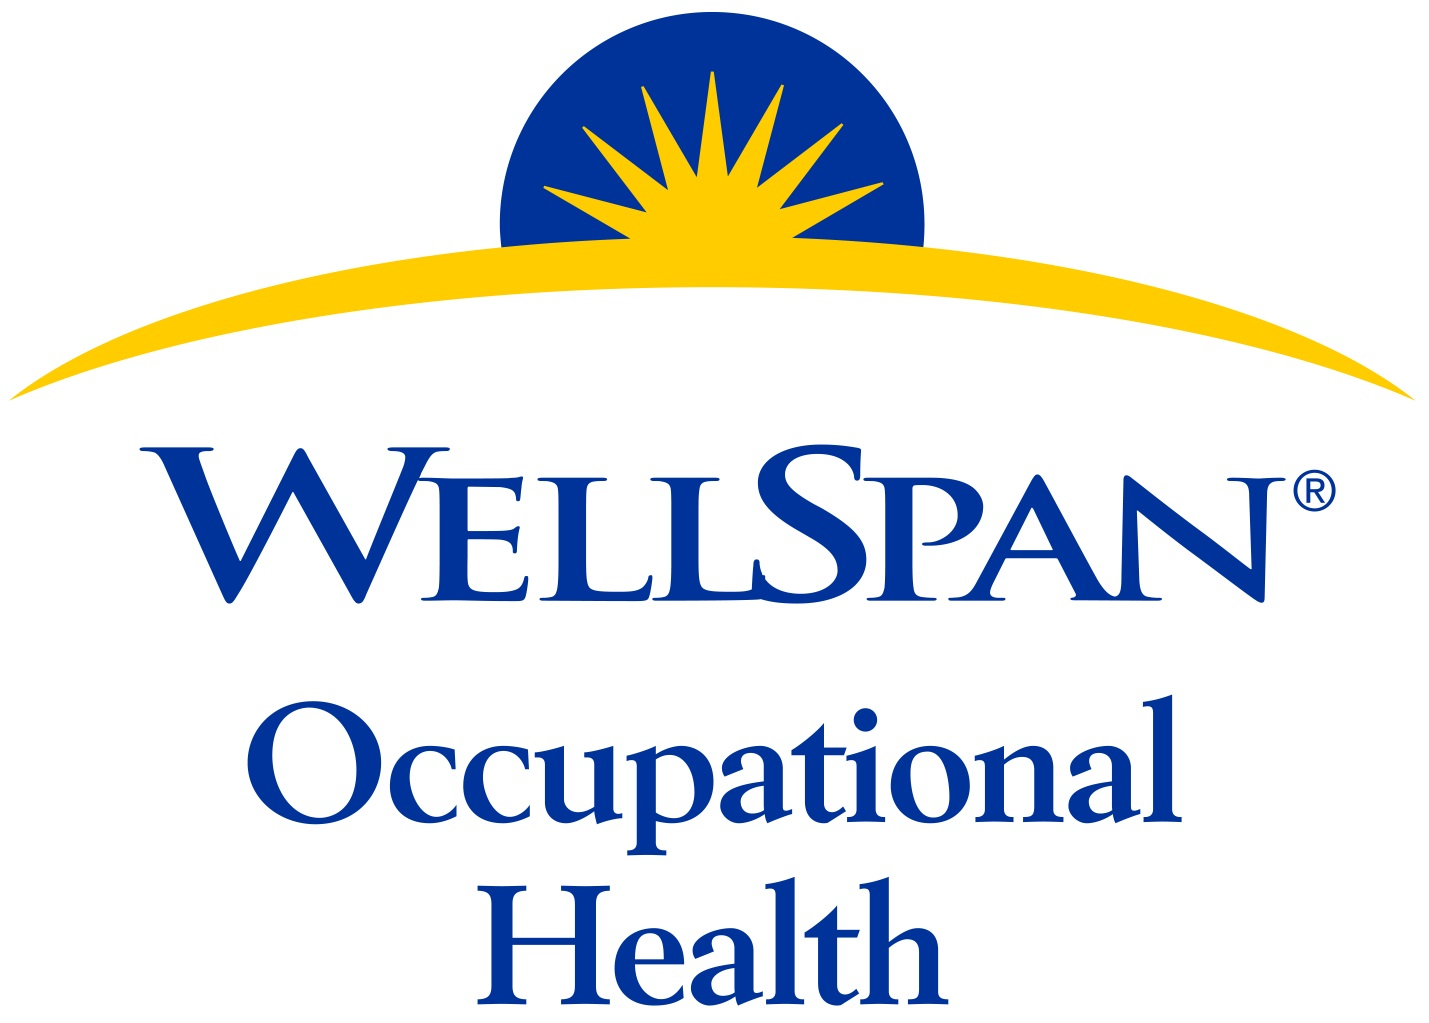 WELLSPAN OCCUPATIONAL HEALTH